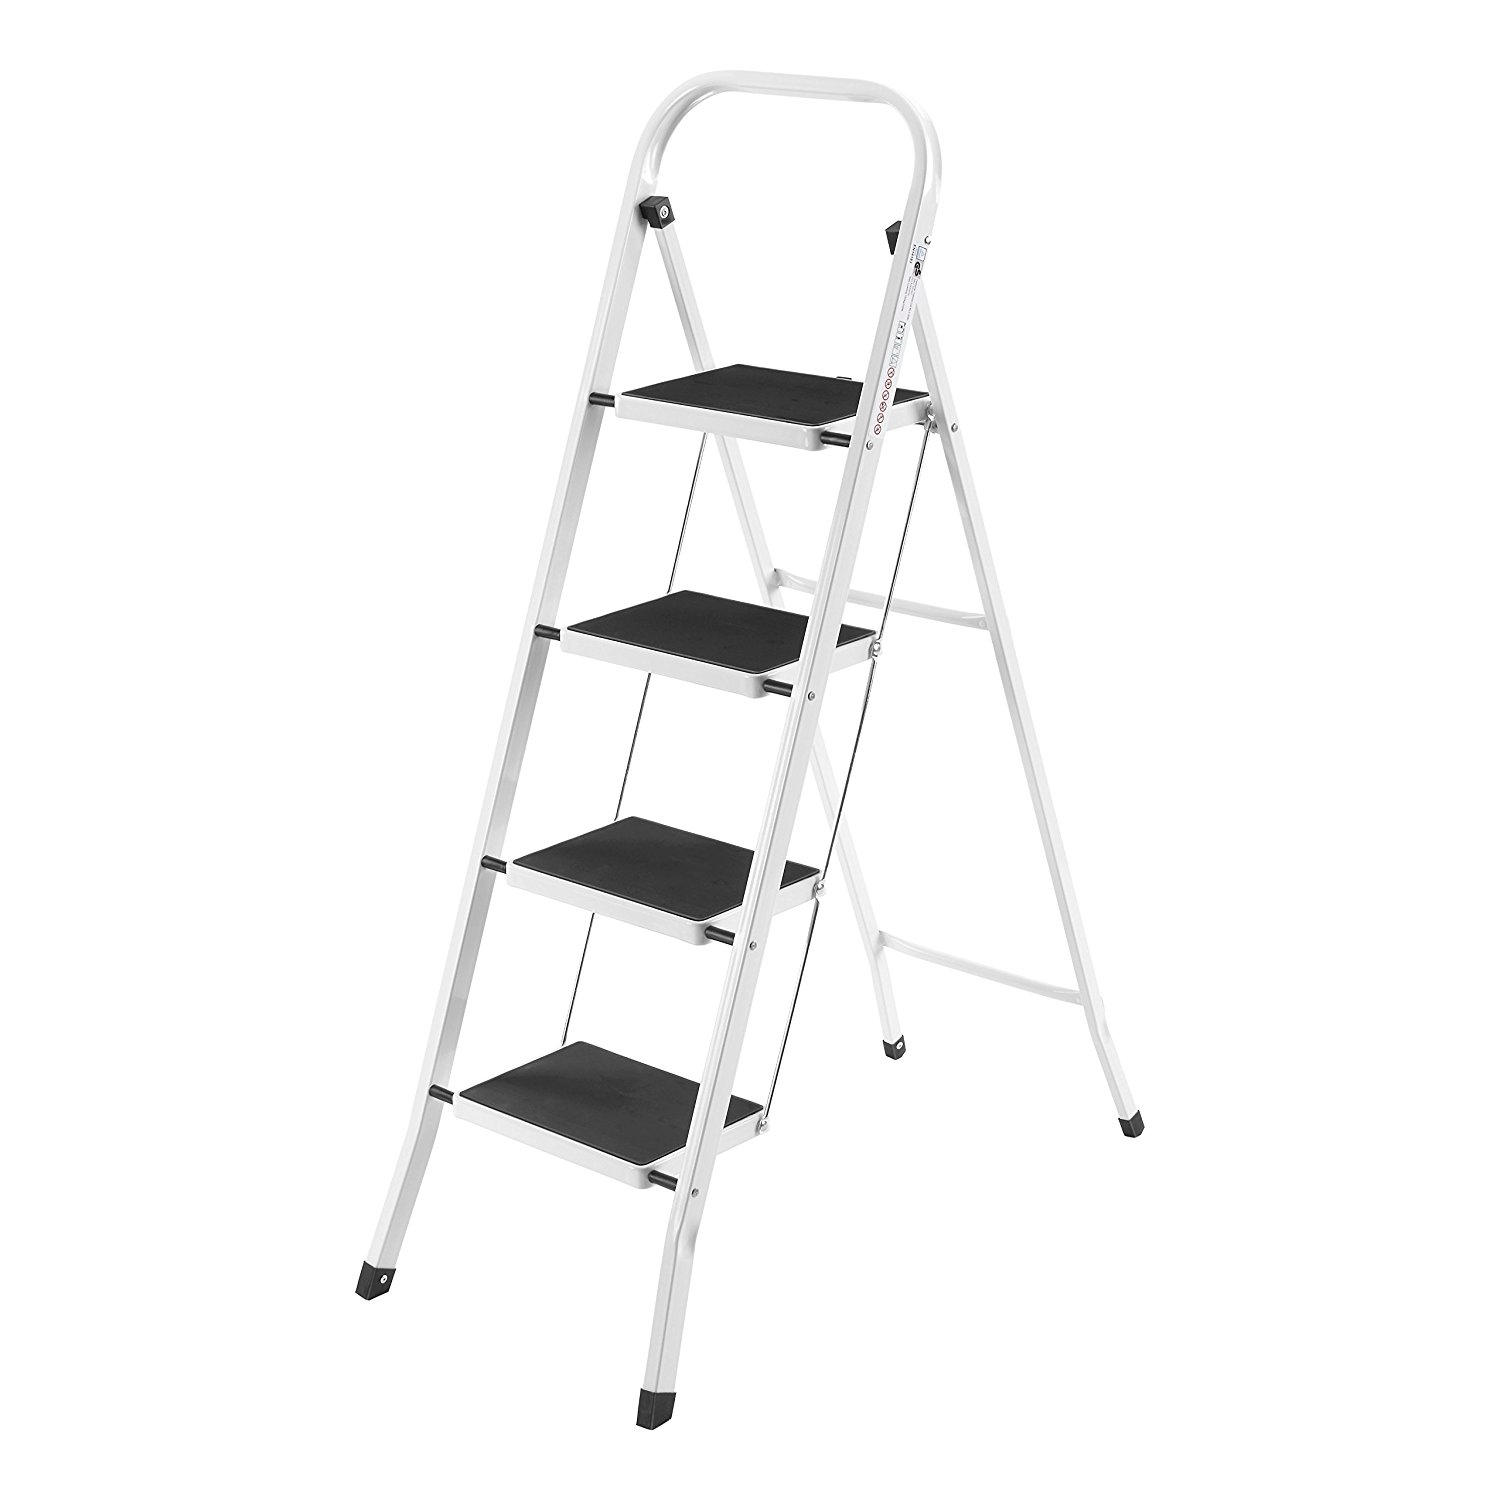 A step ladder, with 4 steps